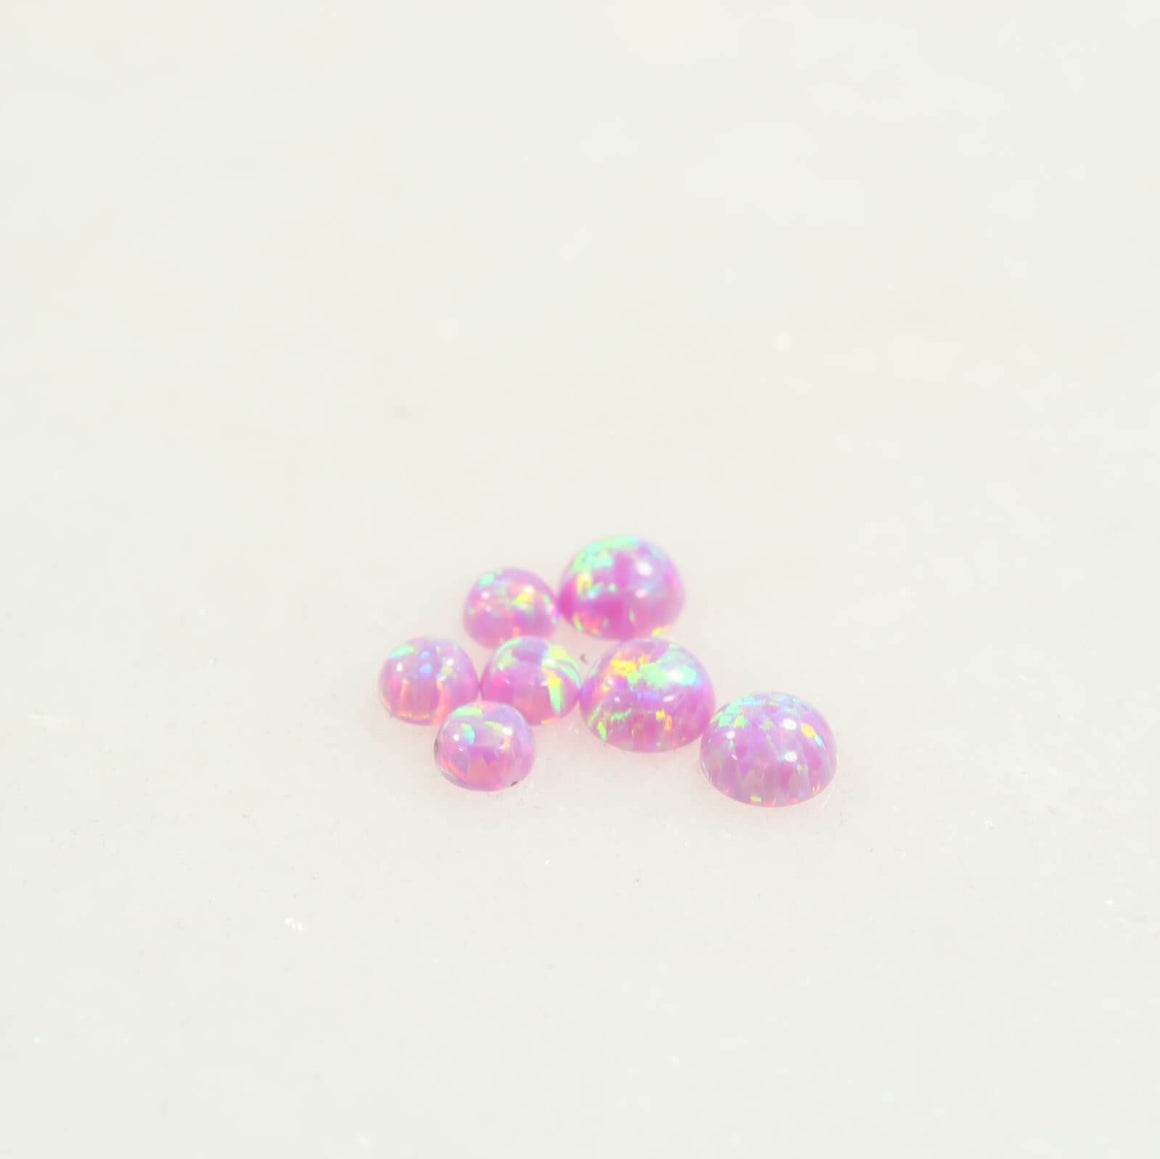 mms38 fire opal cabochon sizes